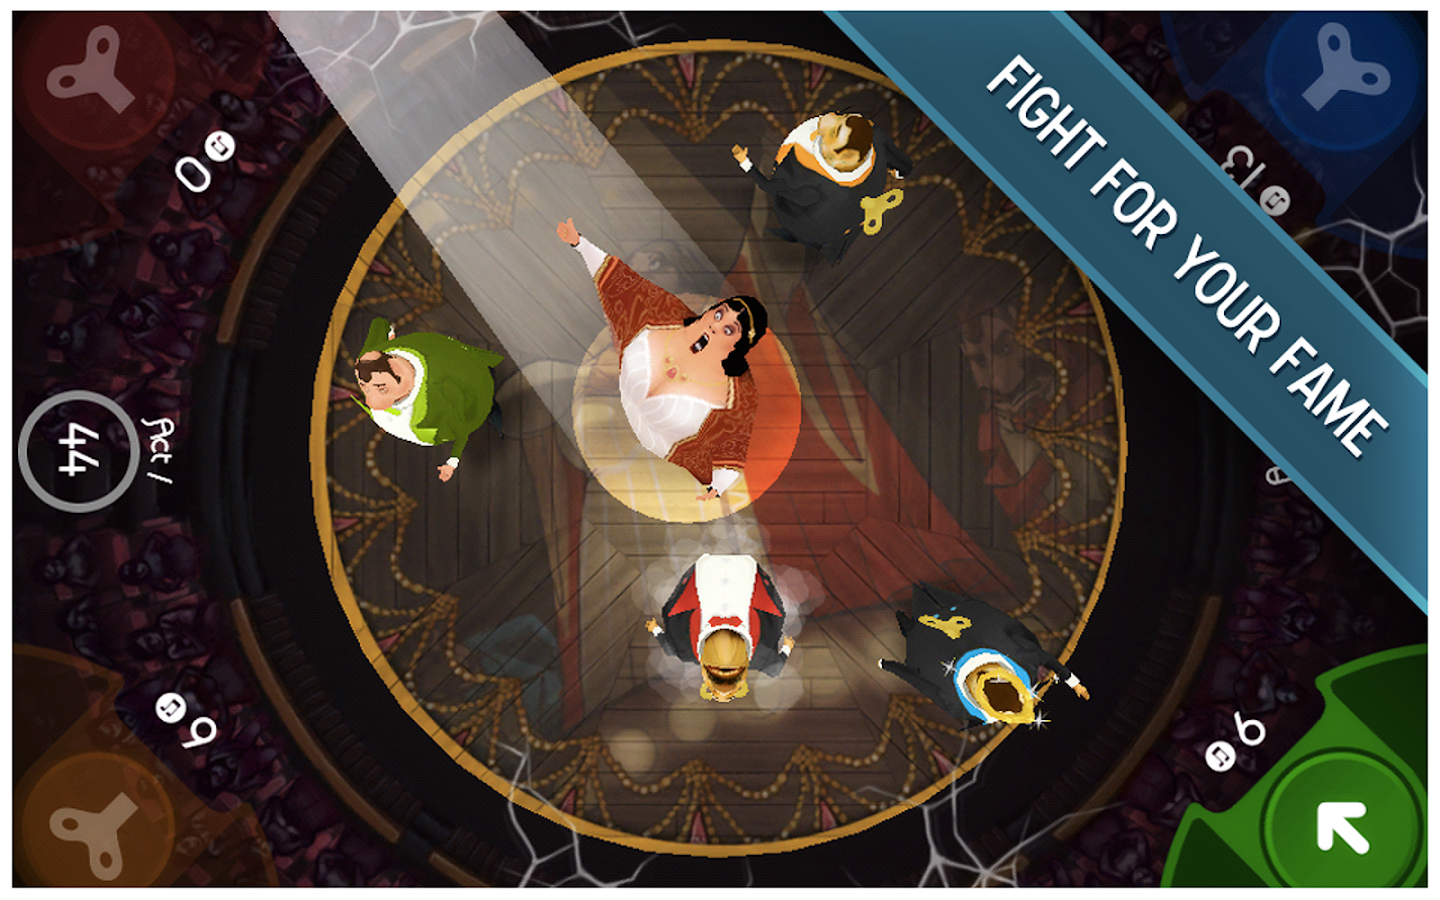 King of Opera - Party Game! - screenshot